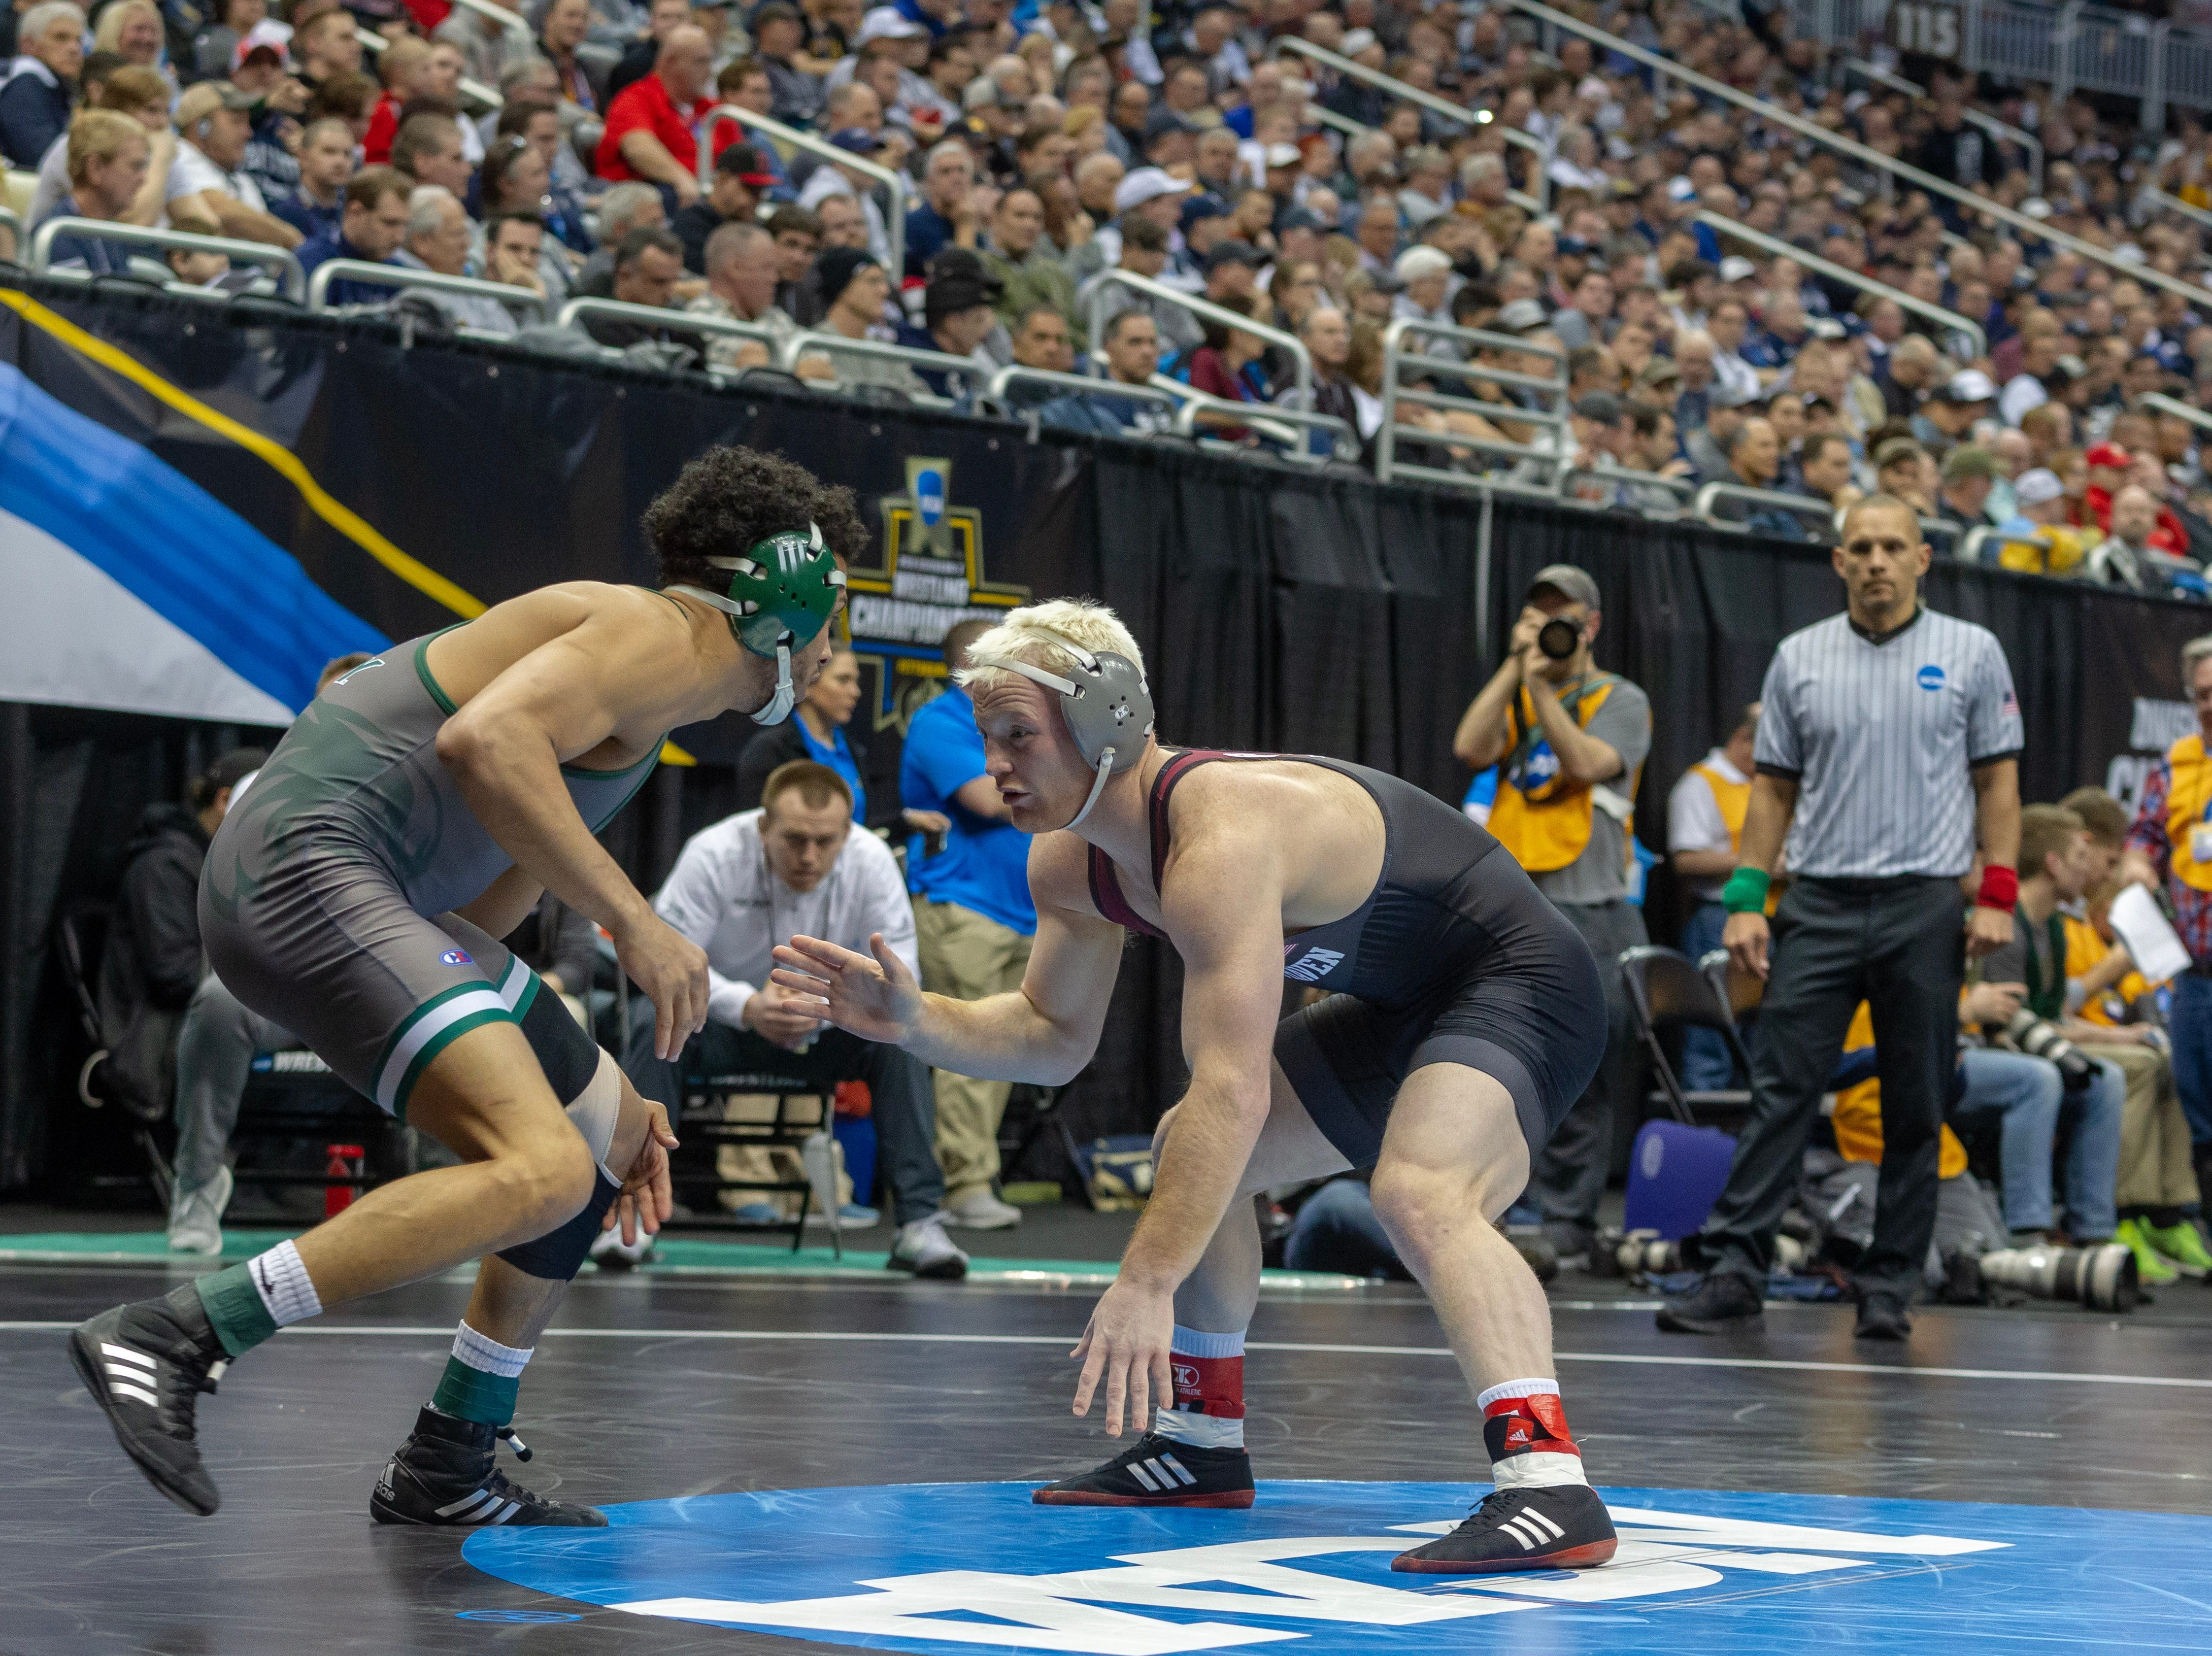 Chance Marsteller, right, pulled away from Demetrius Romero in the third period of his consolation match at the NCAA Championships. The Kennard-Dale grad scored a major decision.